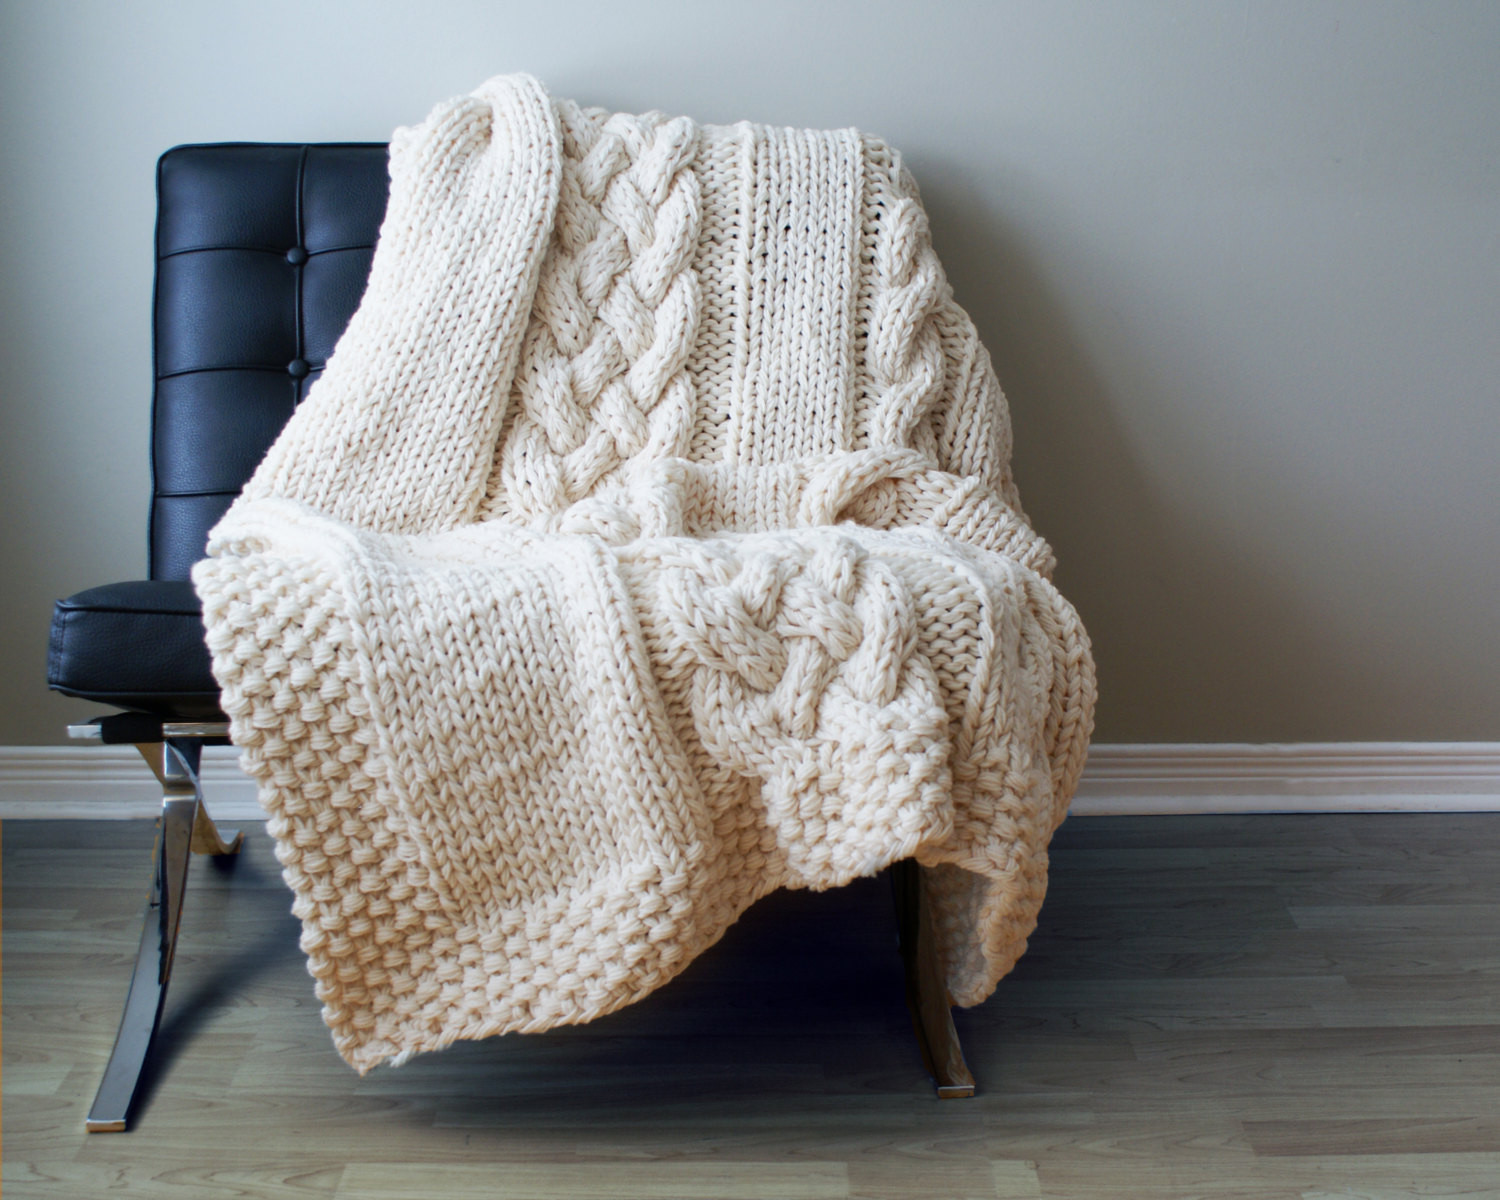 Chunky Knit Blanket Pattern Inspirational Chunky Knit Blanket Pattern Of Delightful 41 Pictures Chunky Knit Blanket Pattern